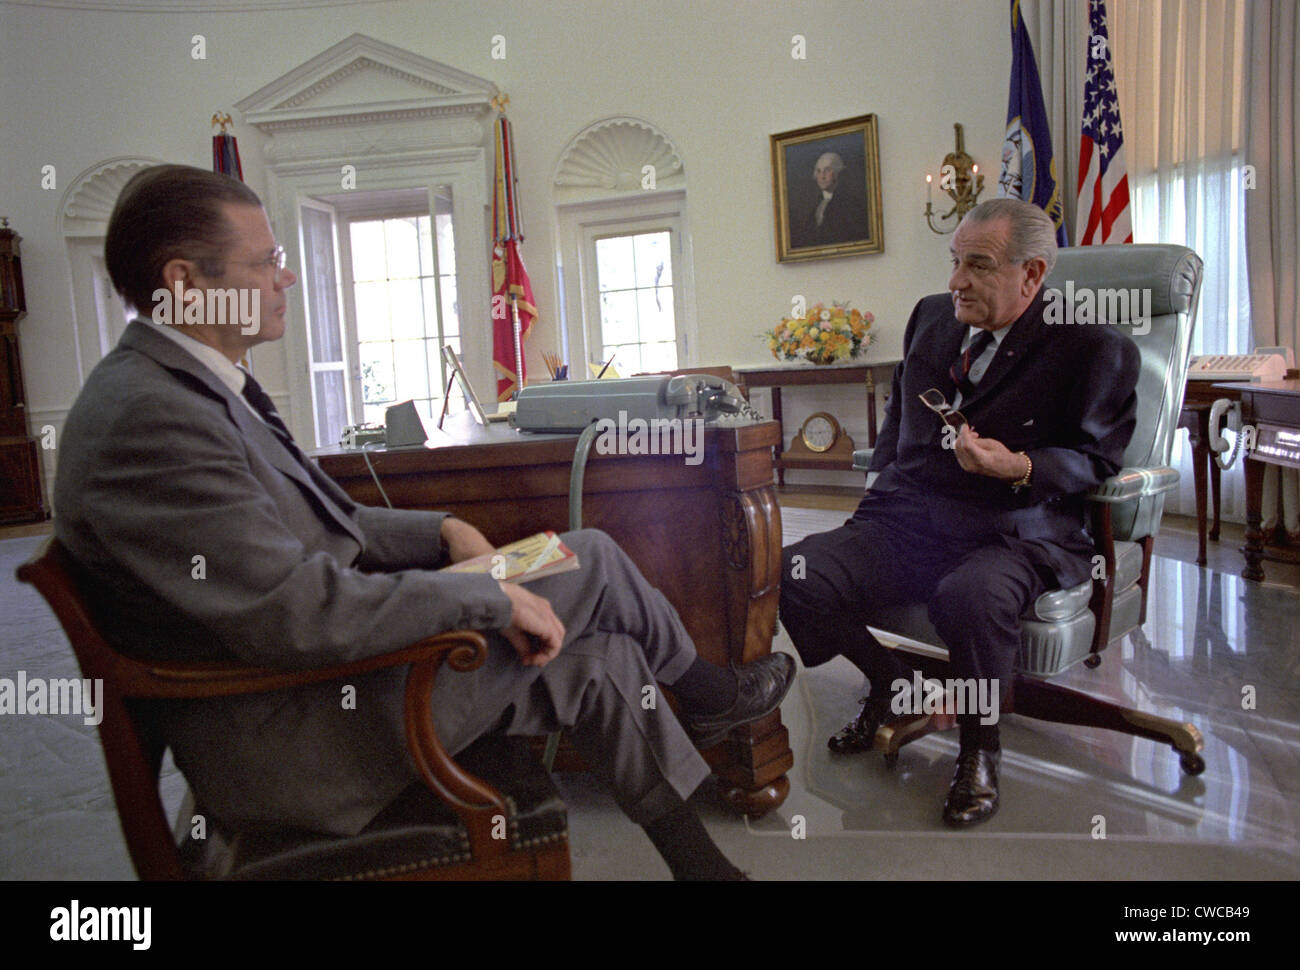 lbj oval office. President Lyndon Johnson Meeting With Defense Secretary Robert McNamara, In The Oval Office. Nov. 27, 1967 Lbj Office